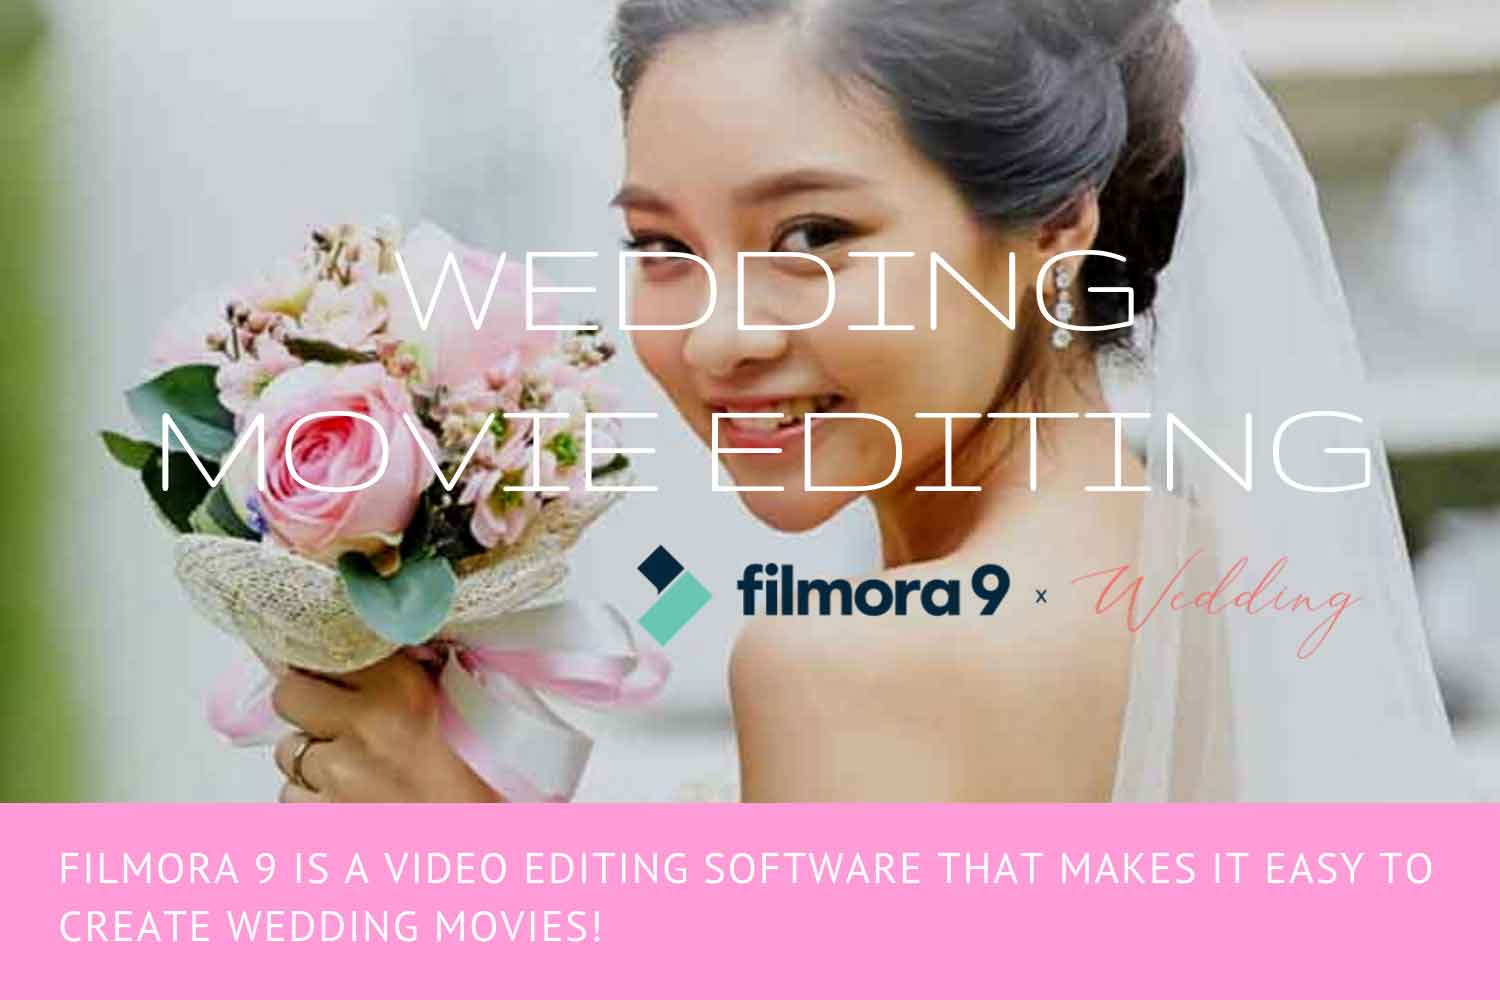 Wedding-movie-image